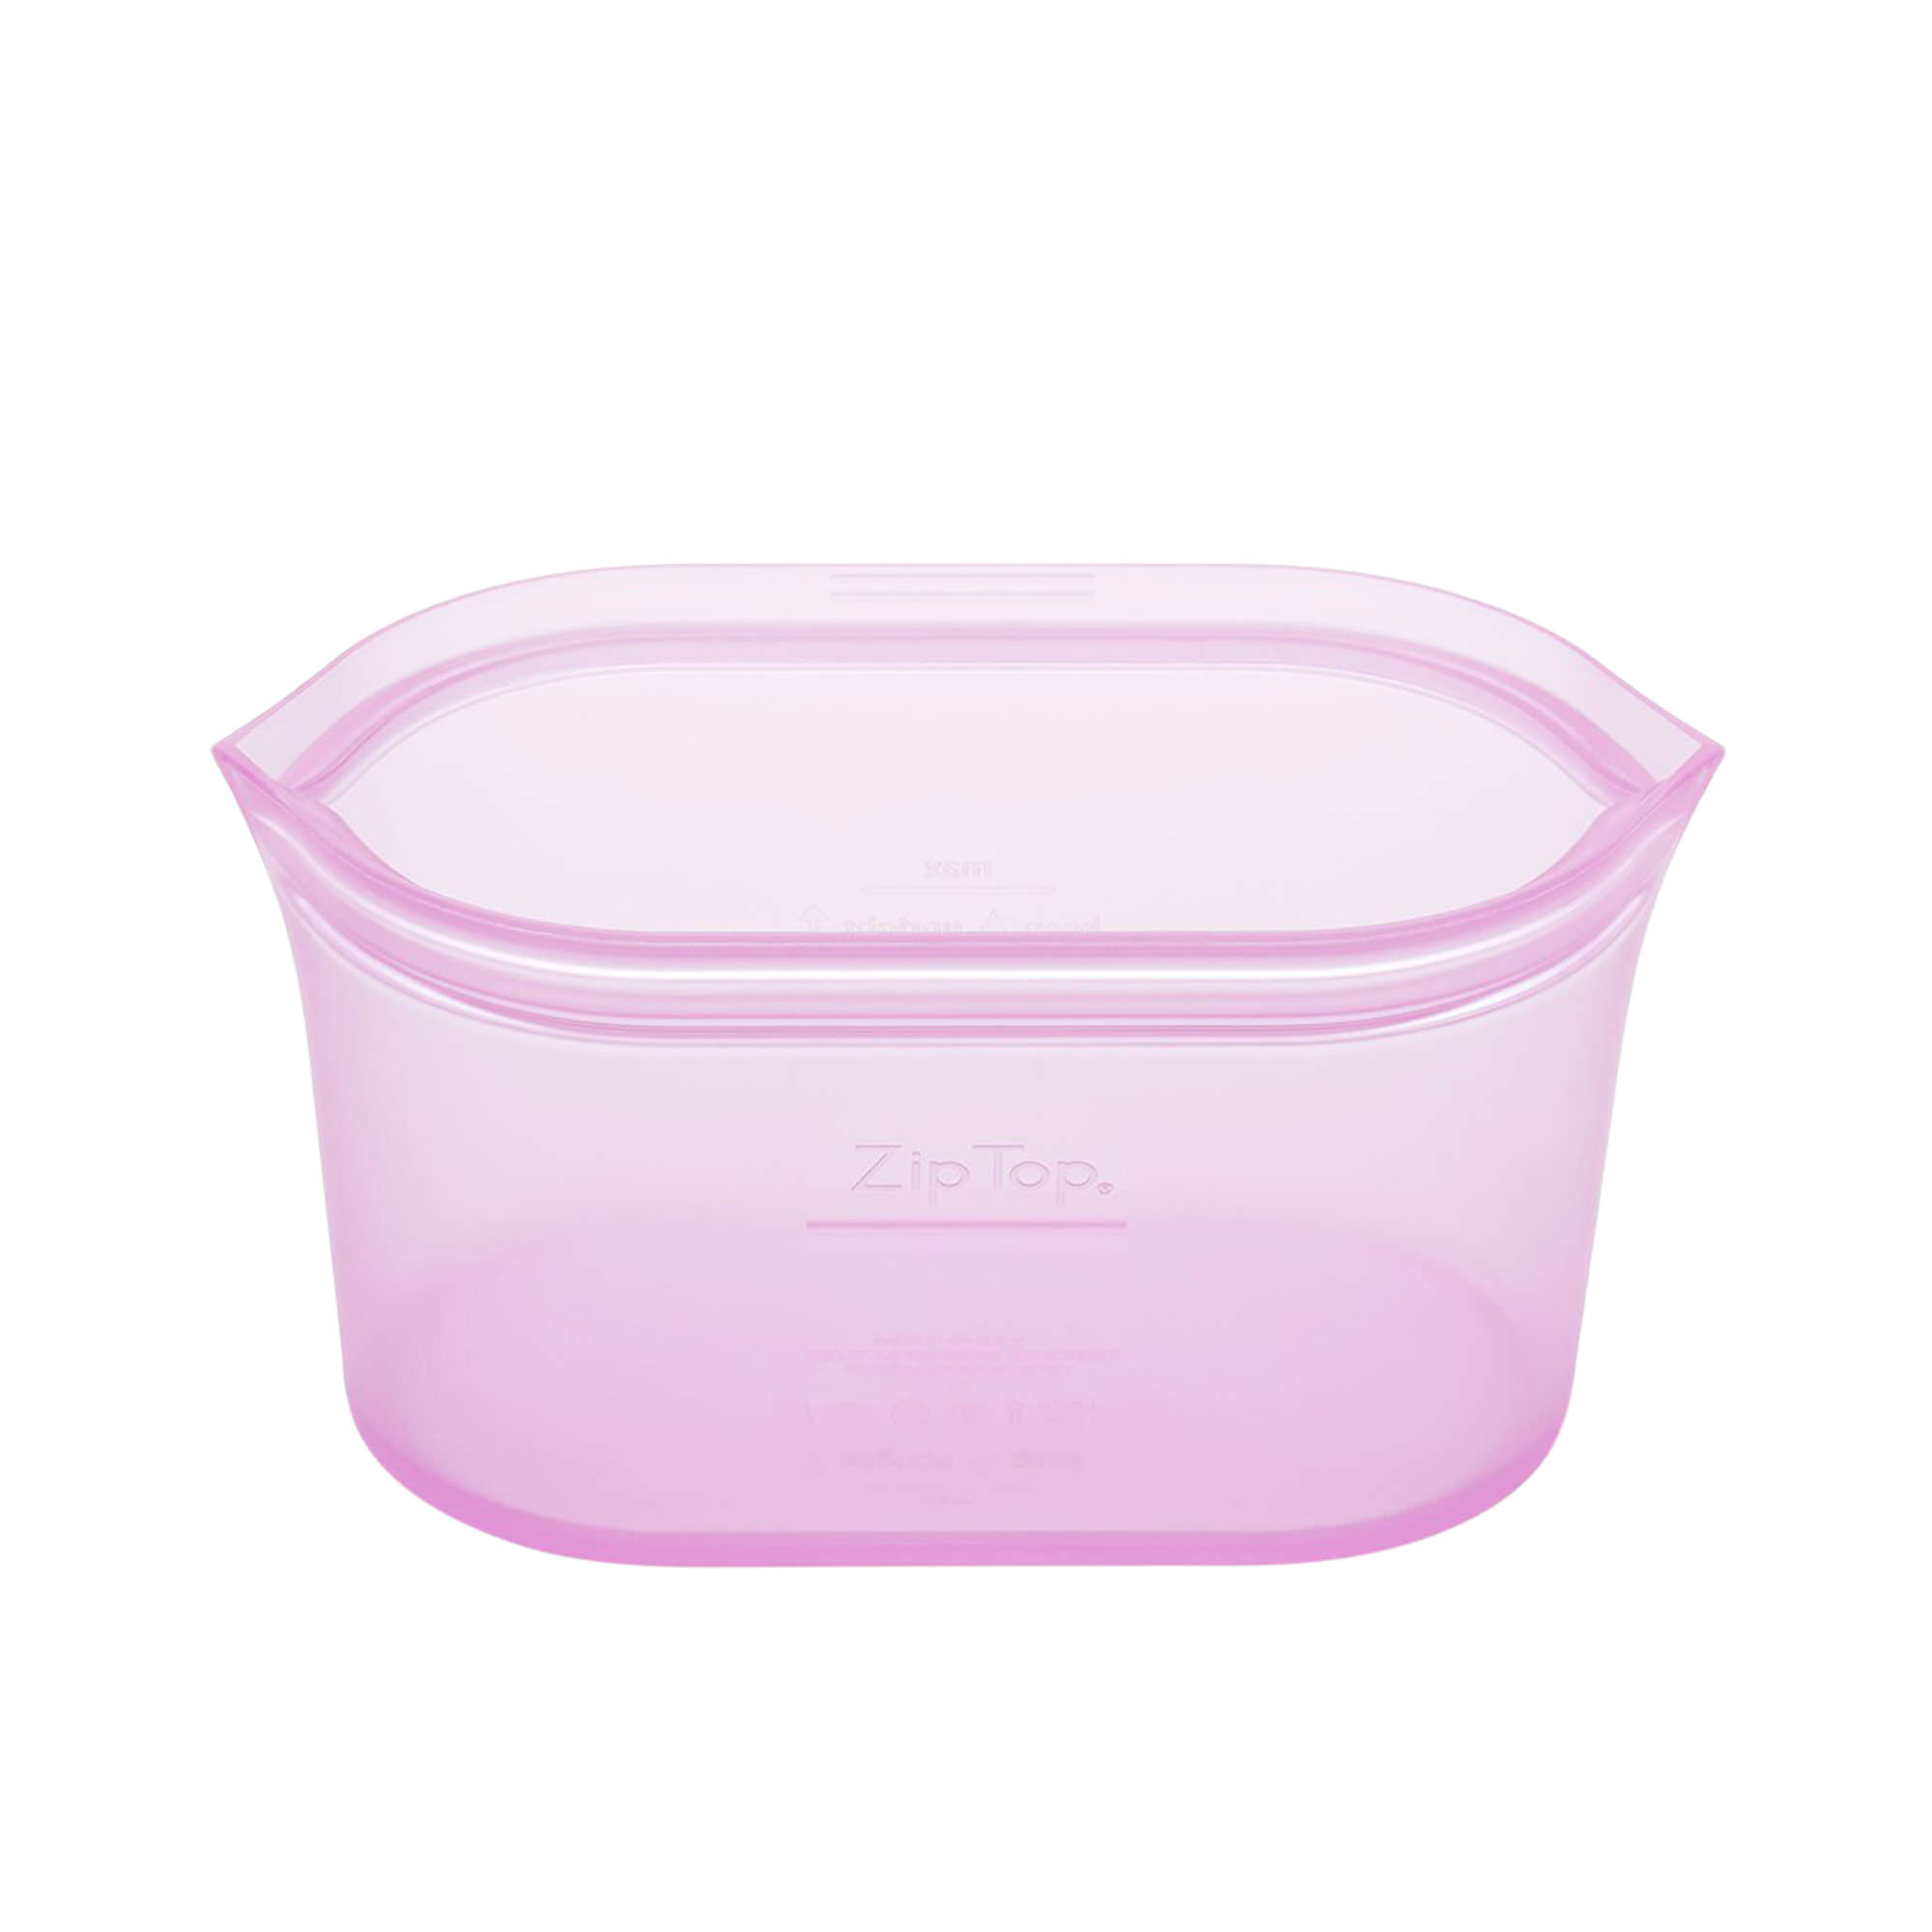 Zip Top Platinum Silicone Medium Dish Container 710ml Lavender